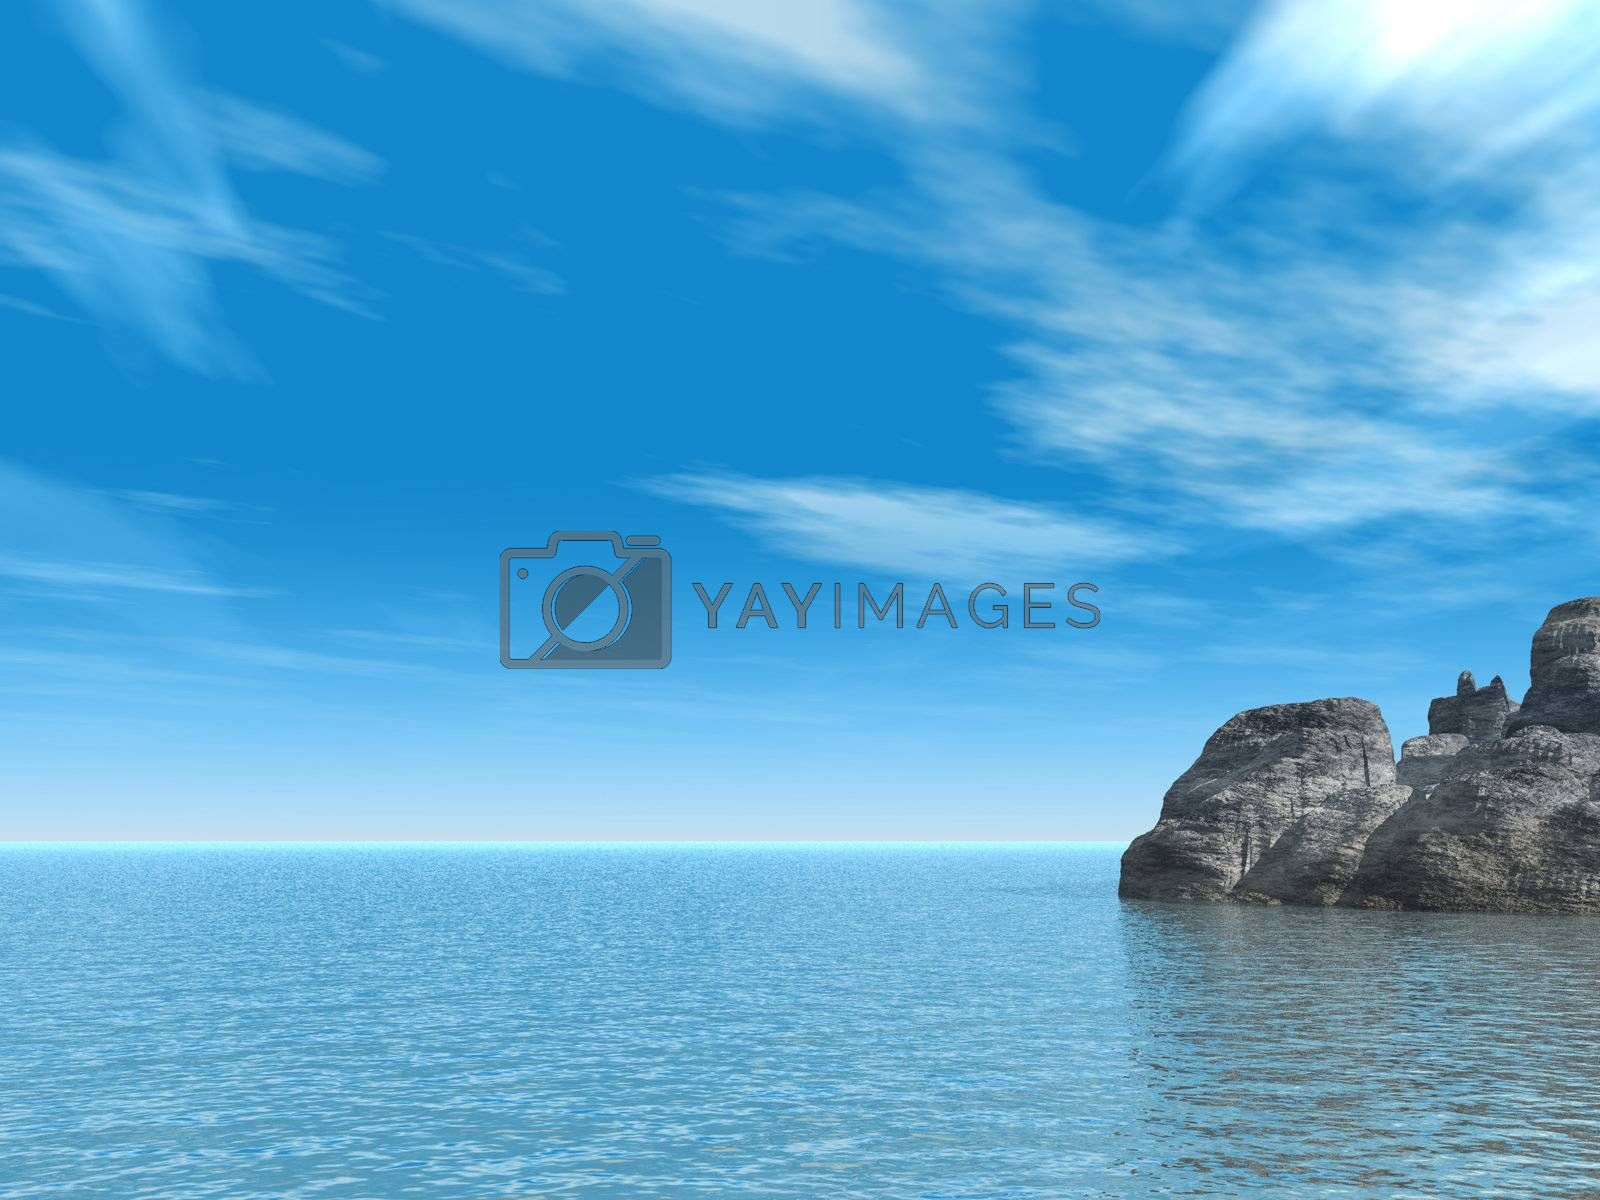 Royalty free image of rocks by drizzd